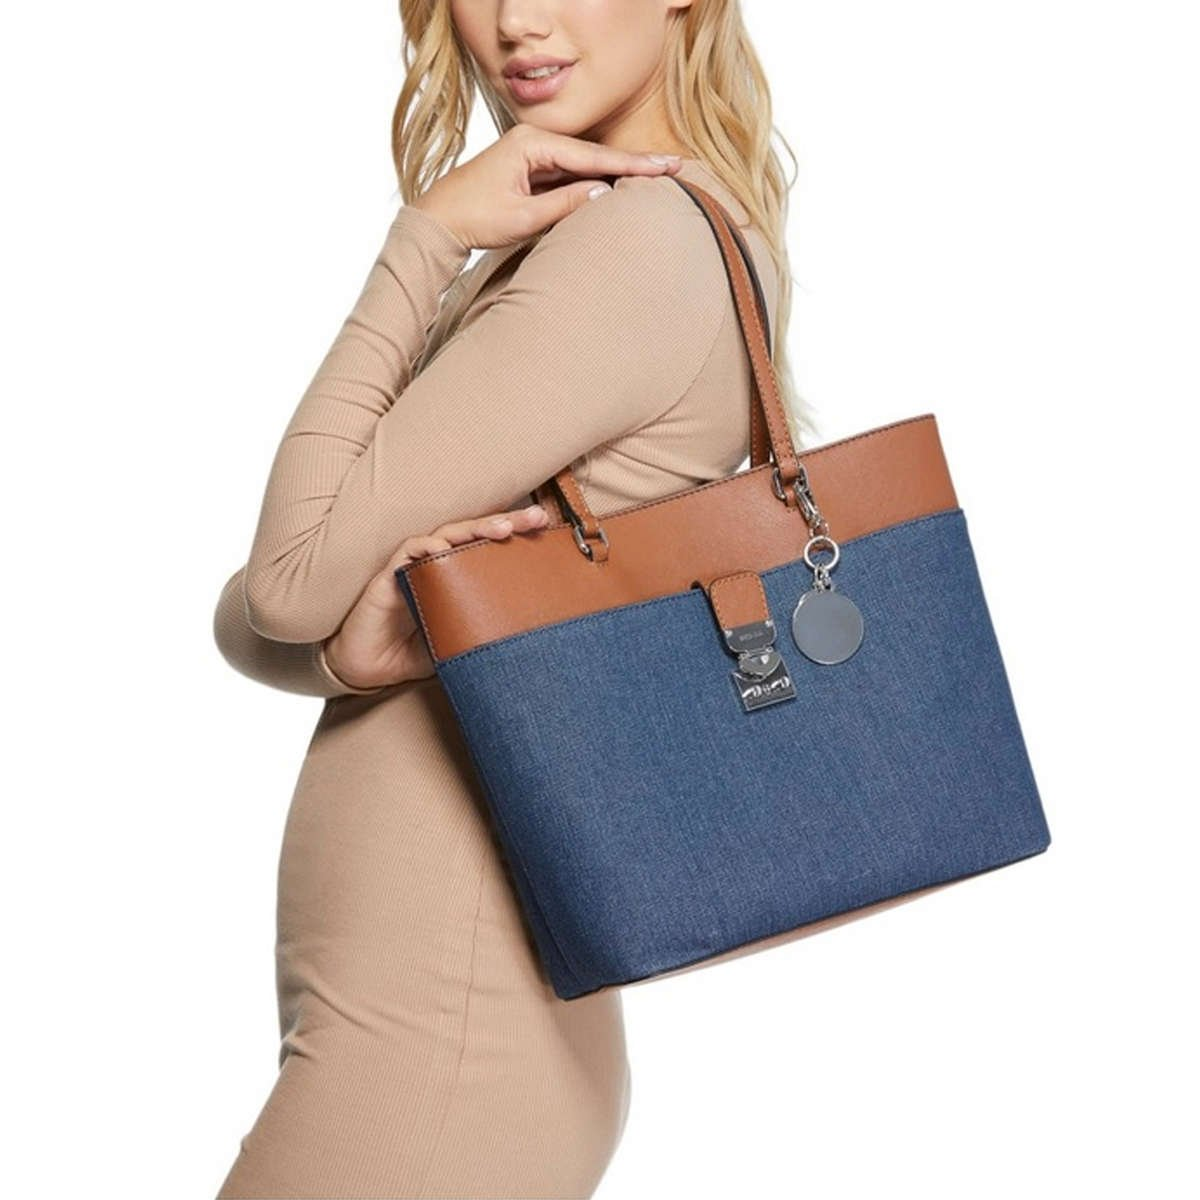 Guess Maxwell Satchel Handbag